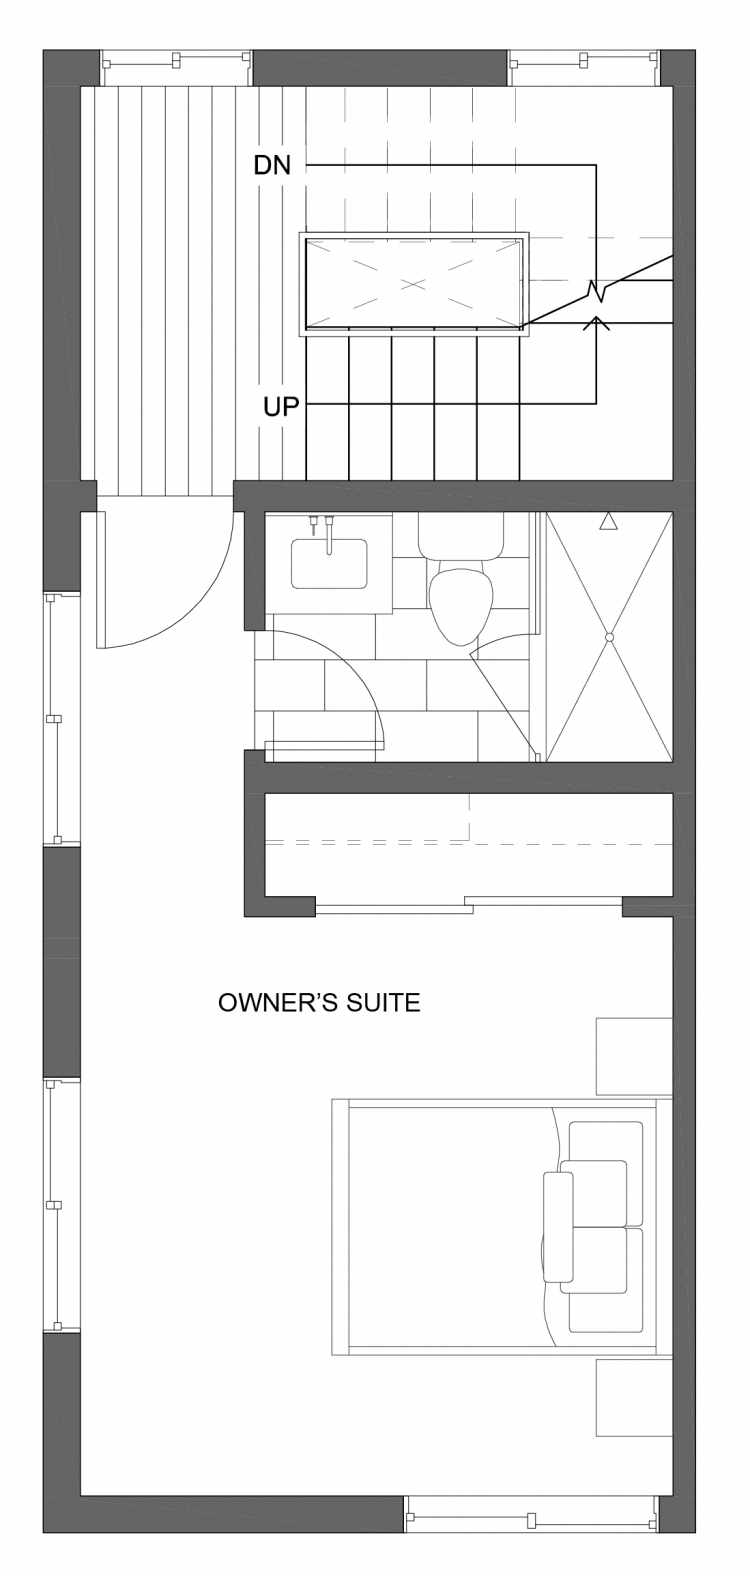 Third Floor Plan of 10429A Alderbrook Pl NW, One of the Jasmine Townhomes in the Greenwood Neighborhood of Seattle